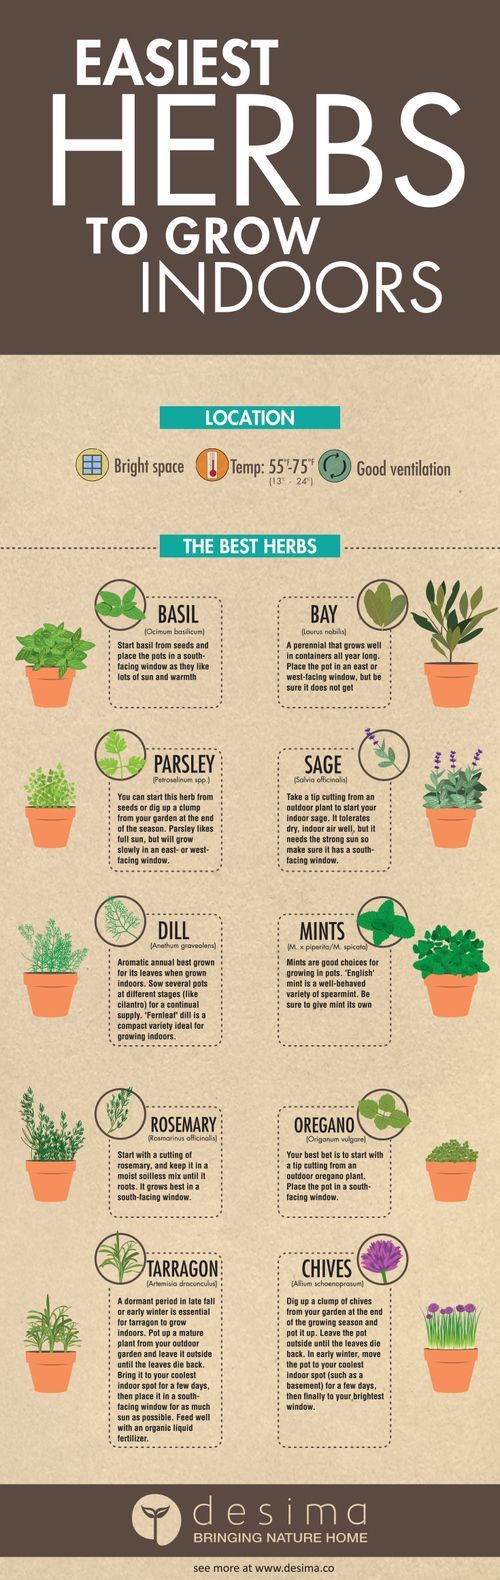 Infographic On The Easiest Herbs To Grow Indoors